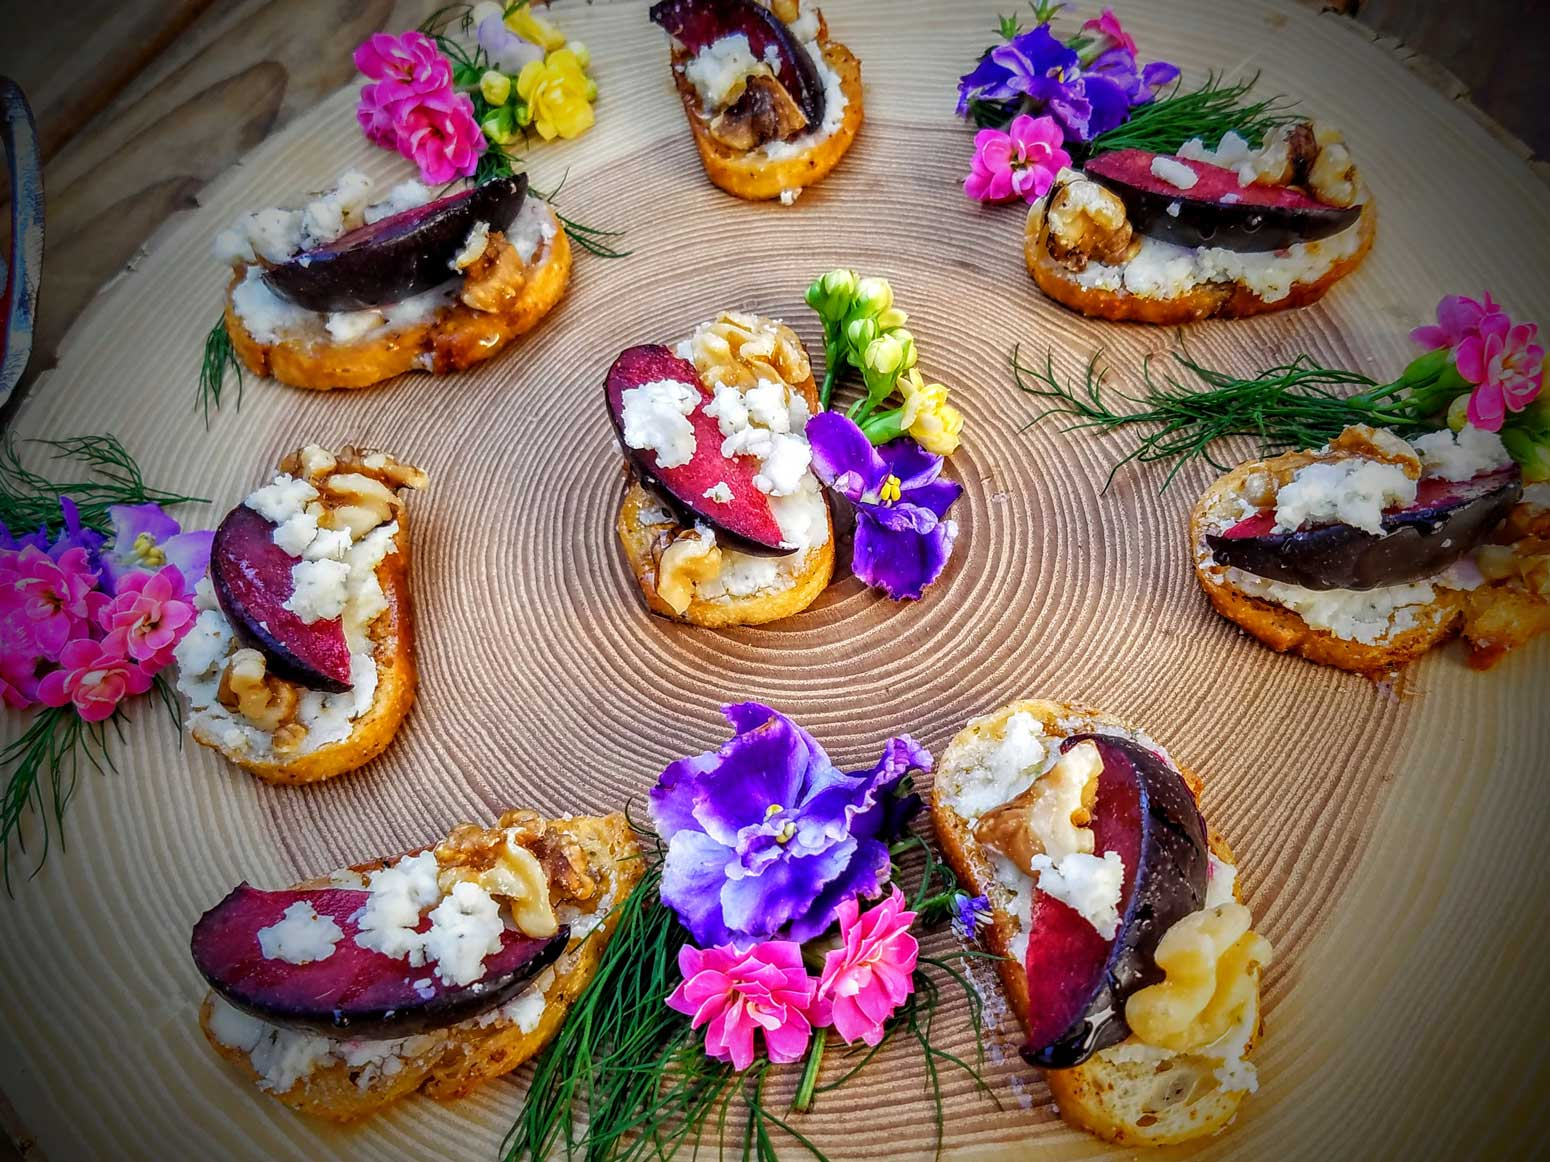 Plum & Blue Cheese crostini